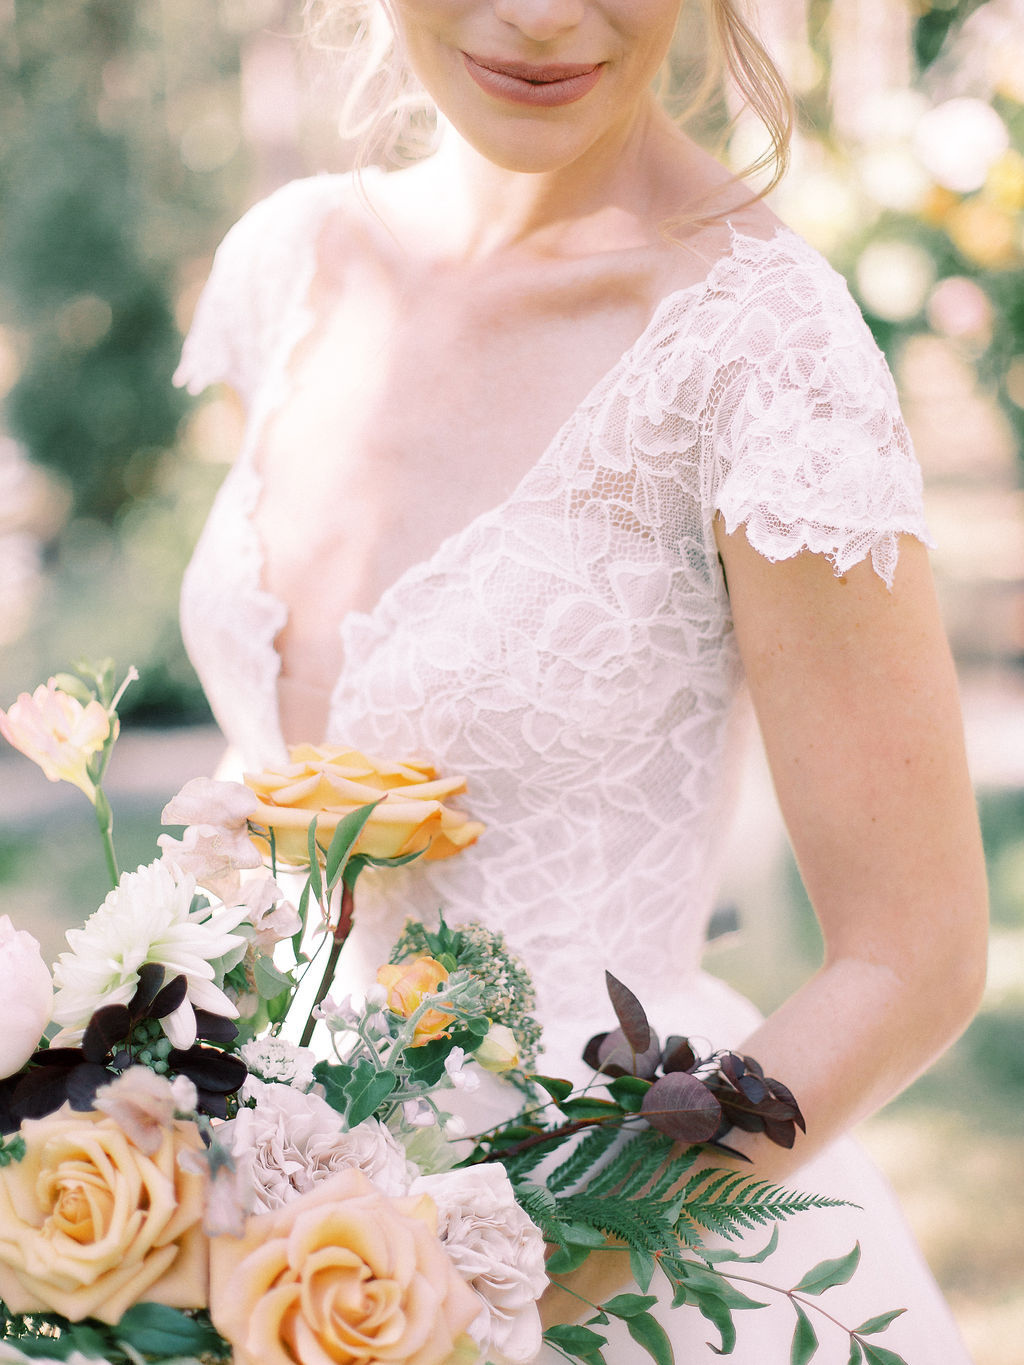 Lace wedding dress: Ethereal Wedding Inspiration at The White Sparrow